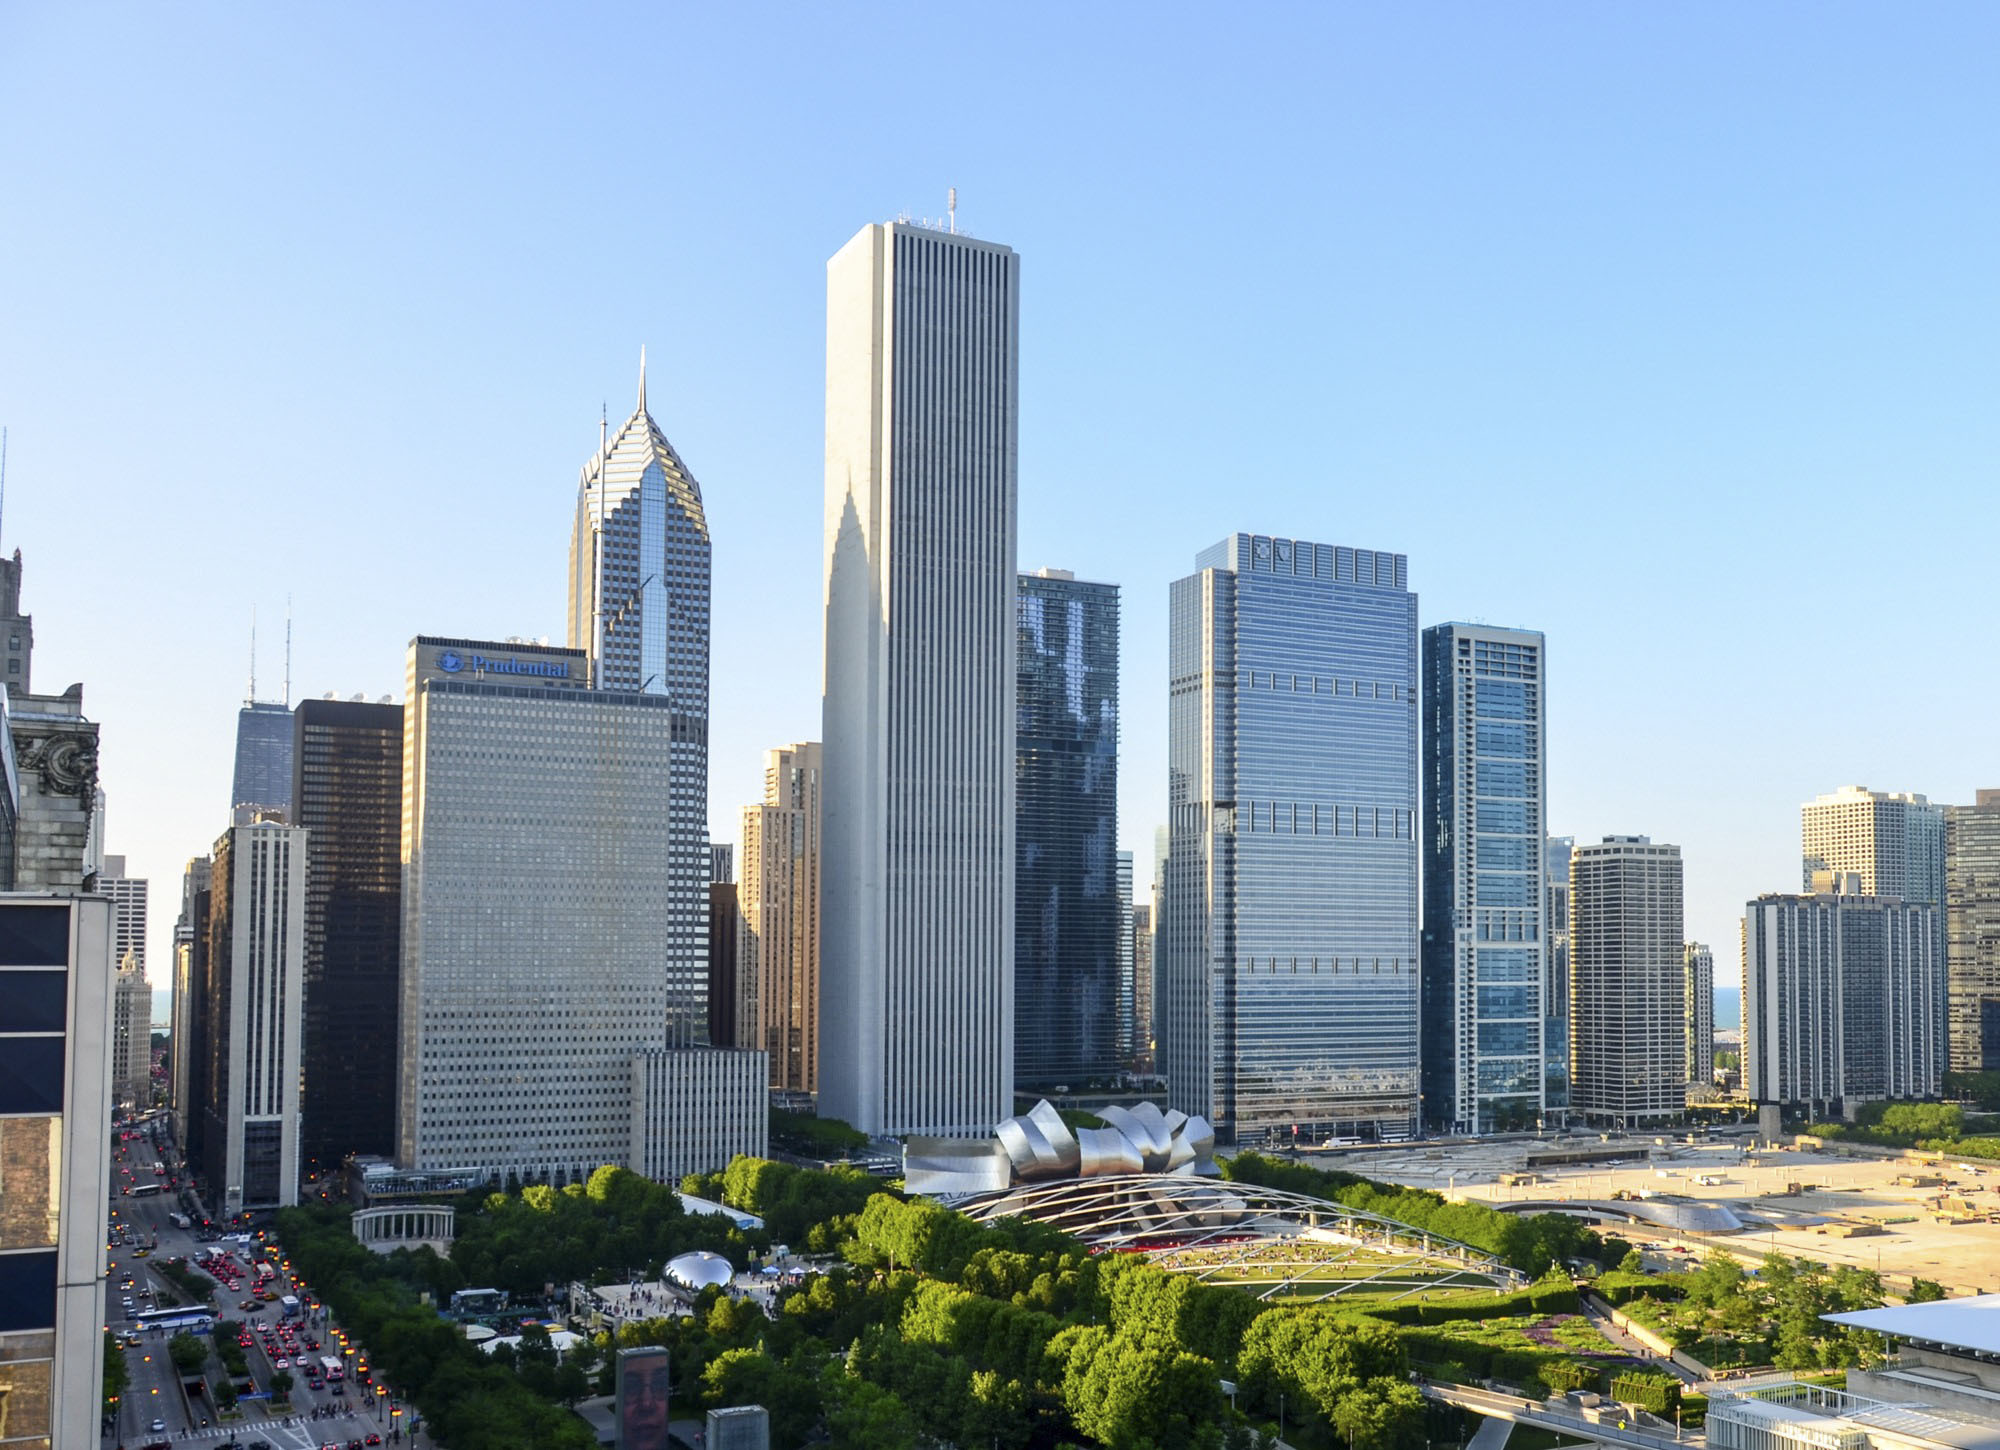 #7: The best places in Chicago to openly cry